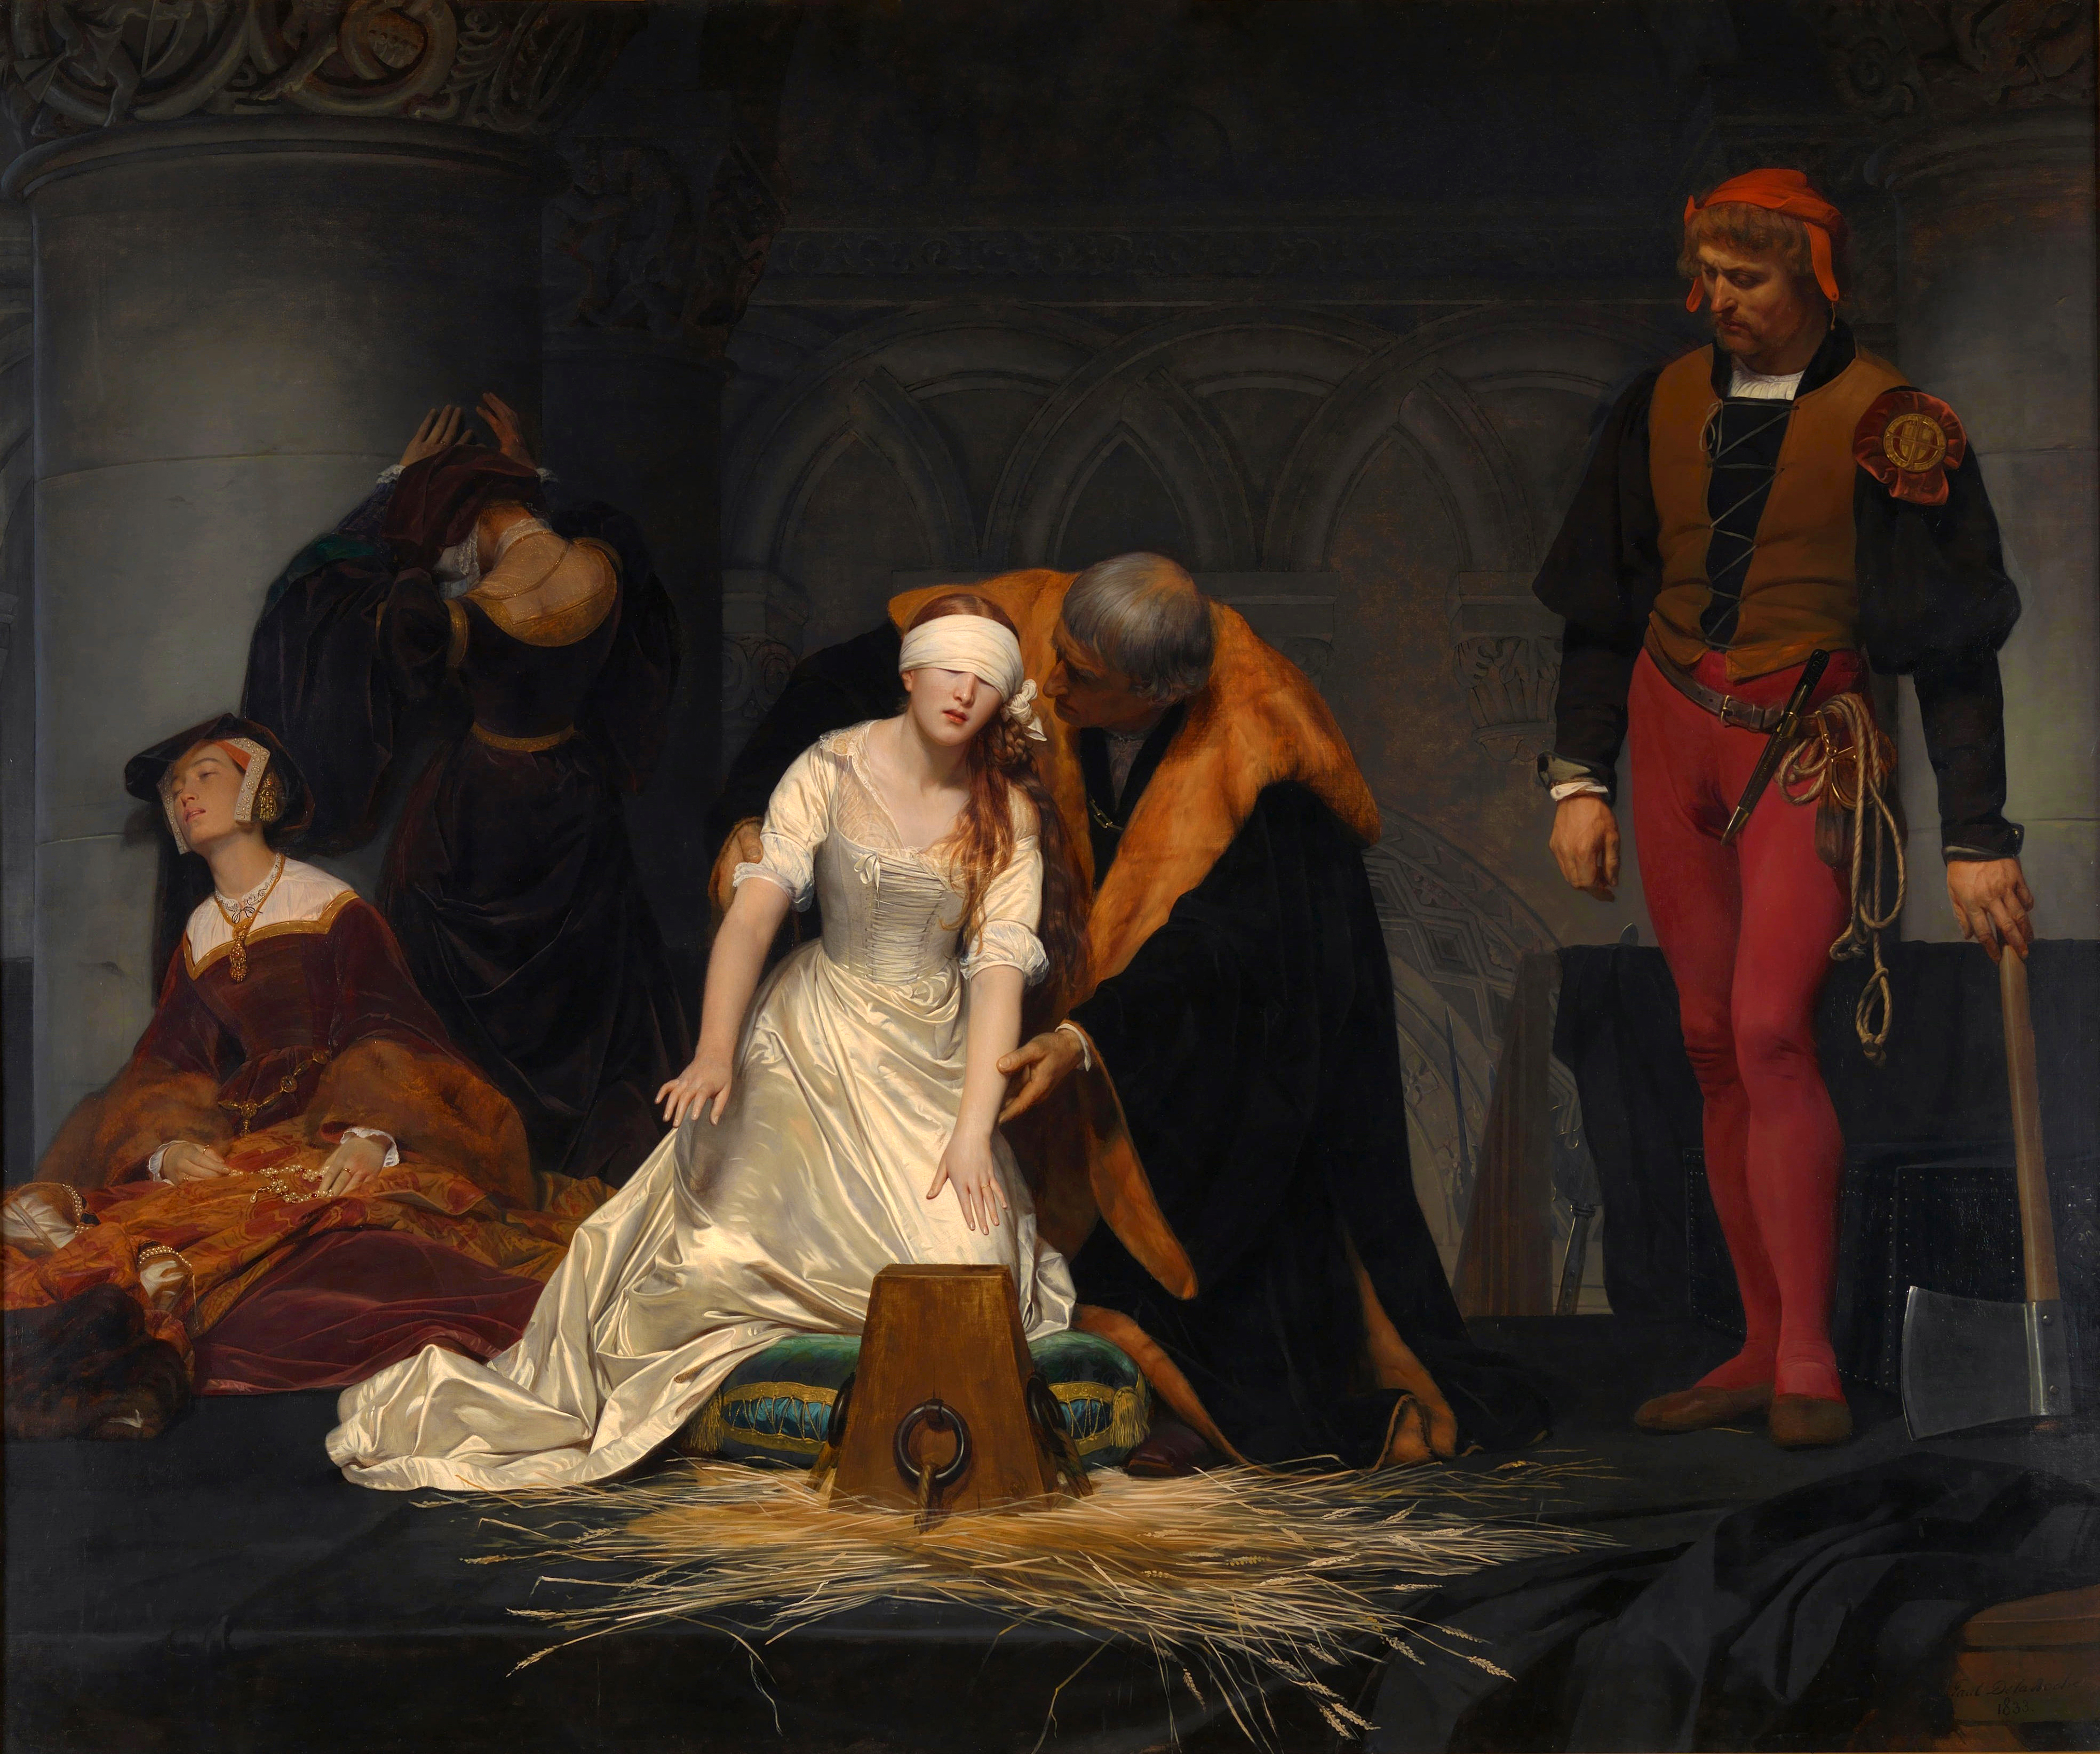 Paul Delaroche, The Execution of Lady Jane Grey, Oil on canvas, 246 cm × 297 cm, National Gallery, London (from the cover of Nationalizing the Past, Writing the Nation VI)